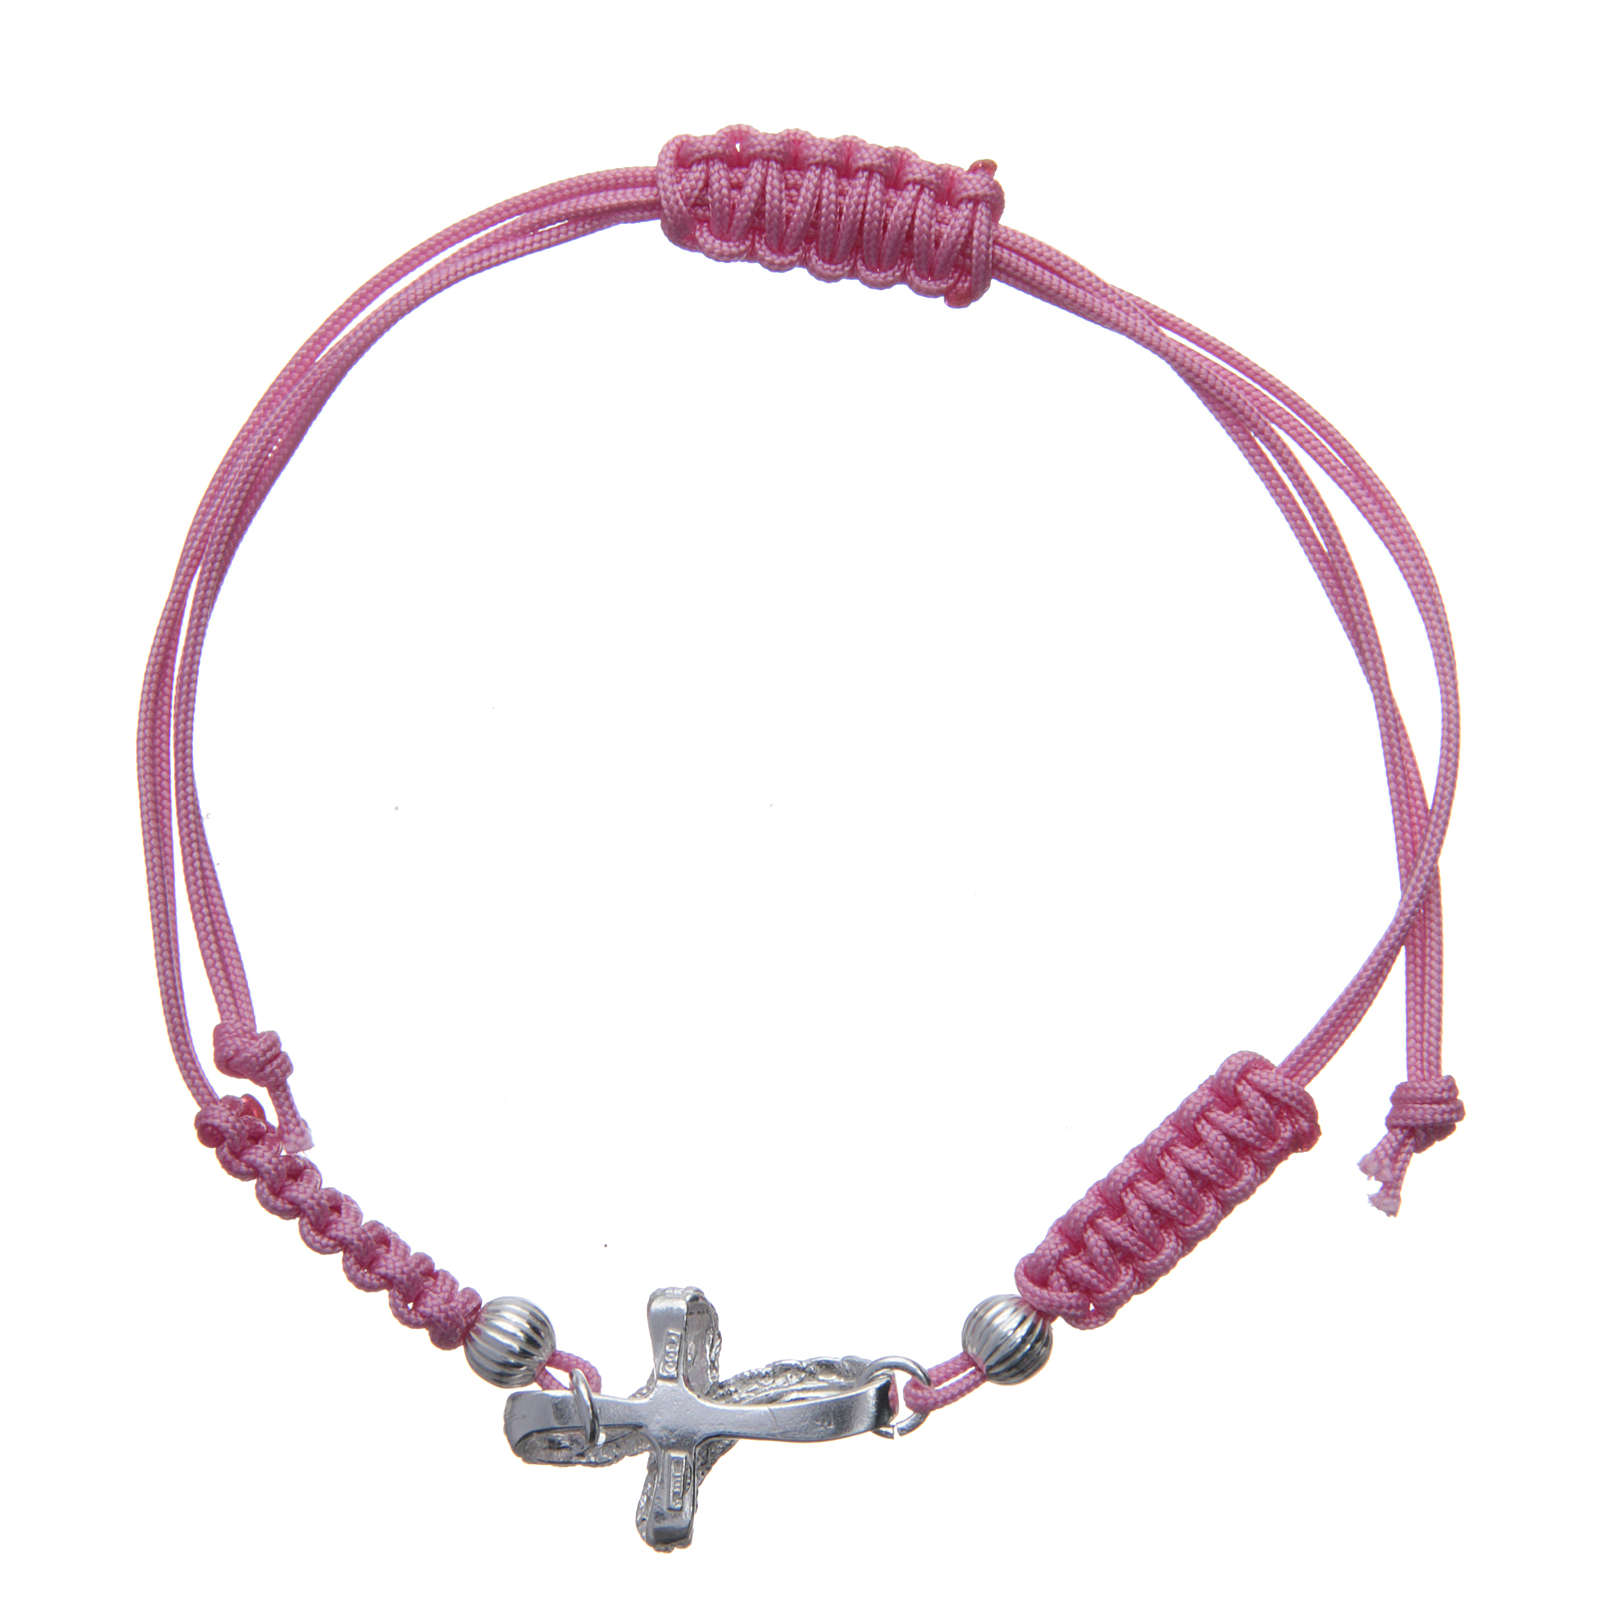 Bracelet with knotted cross in 925 silver and pink cord 4